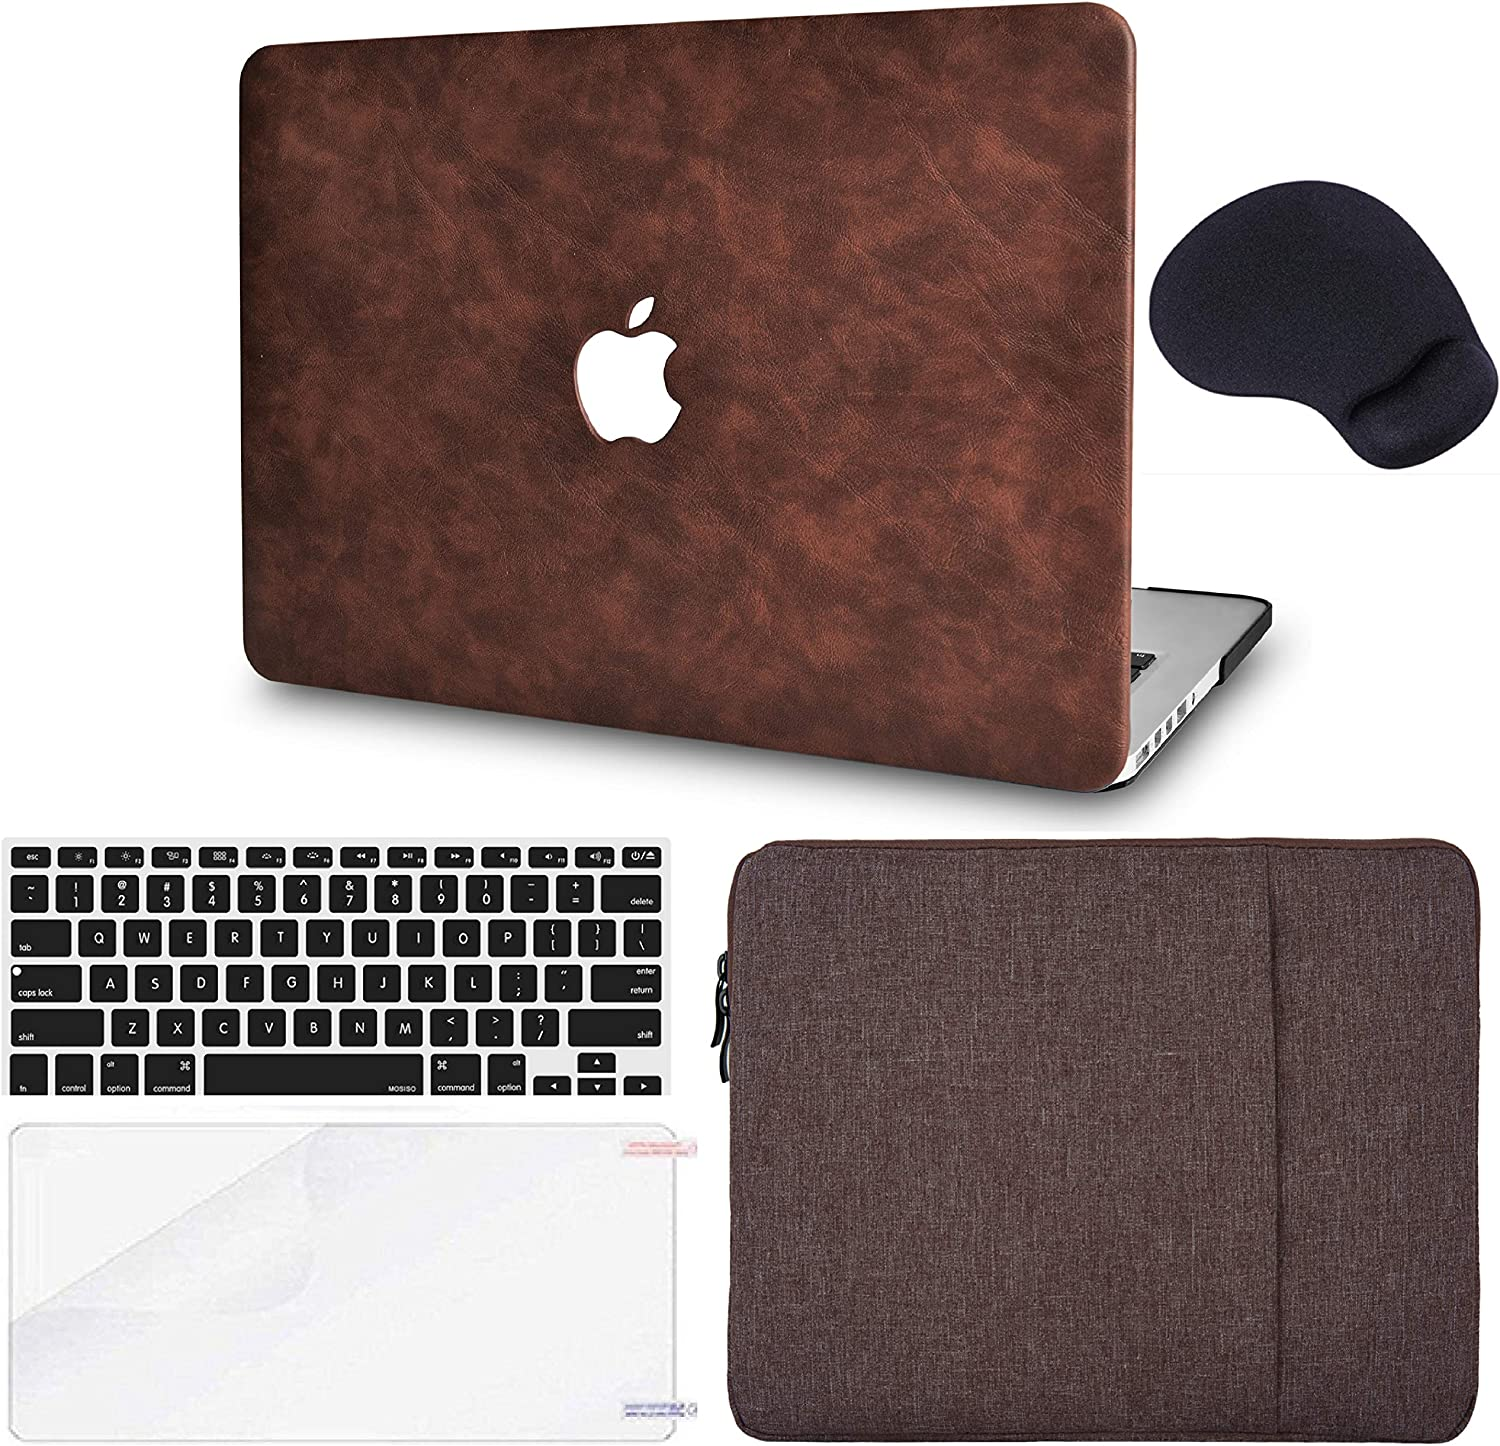 "LuvCase 5in1 Laptop Case for MacBook Air 11"" A1465 / A1370 Leather Hard Shell Cover, Sleeve, Mouse Pad, Keyboard Cover and Screen Protector (Brown Cow Leather)"